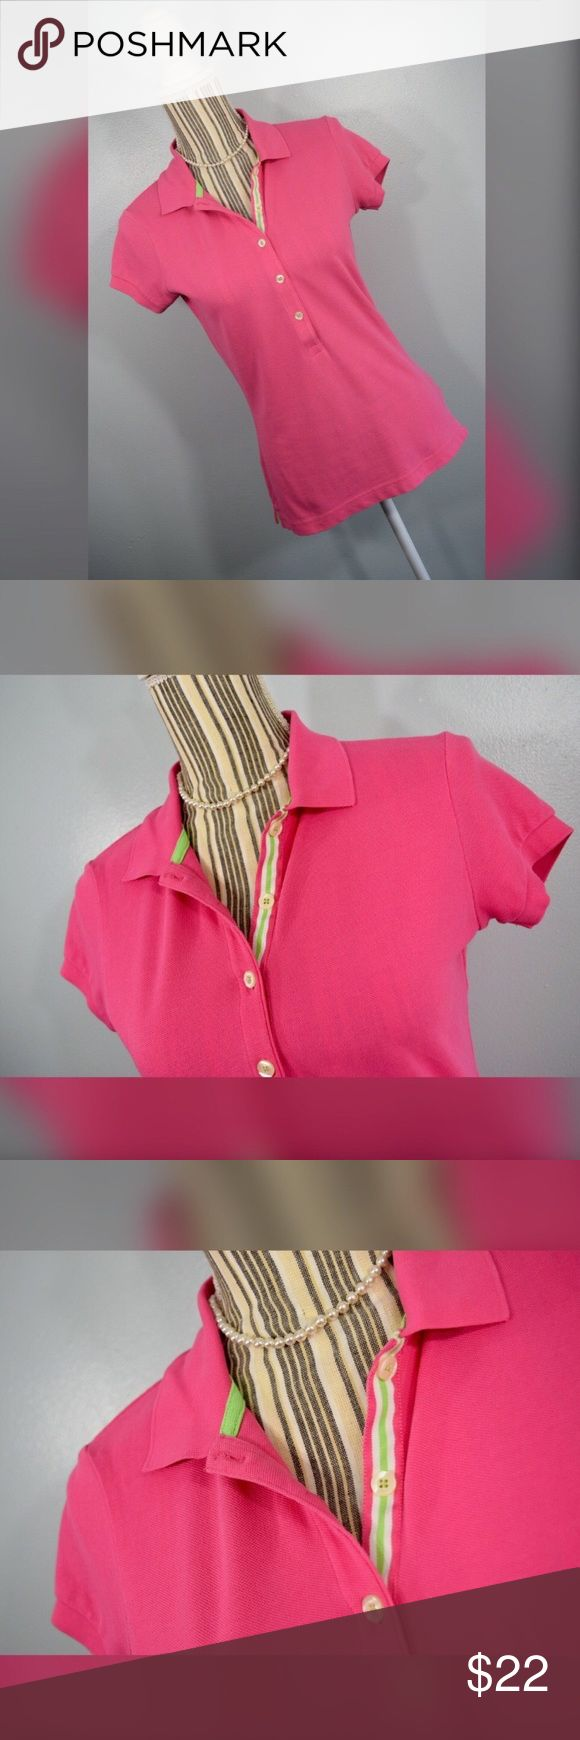 """{lilly pulitzer} Pink Polo Shirt Pink polo shirt with green and white accents by Lilly Pulitzer. Size Small.   Closure: 5 Buttons in front  Material: 95% Pima Cotton 5% Spandex   Measurements Bust: 33"""" lying flat, stretches to 38""""  Shoulder to Hem Length: 23"""" Sleeve Length: 4.75"""" Lilly Pulitzer Tops Tees - Short Sleeve"""